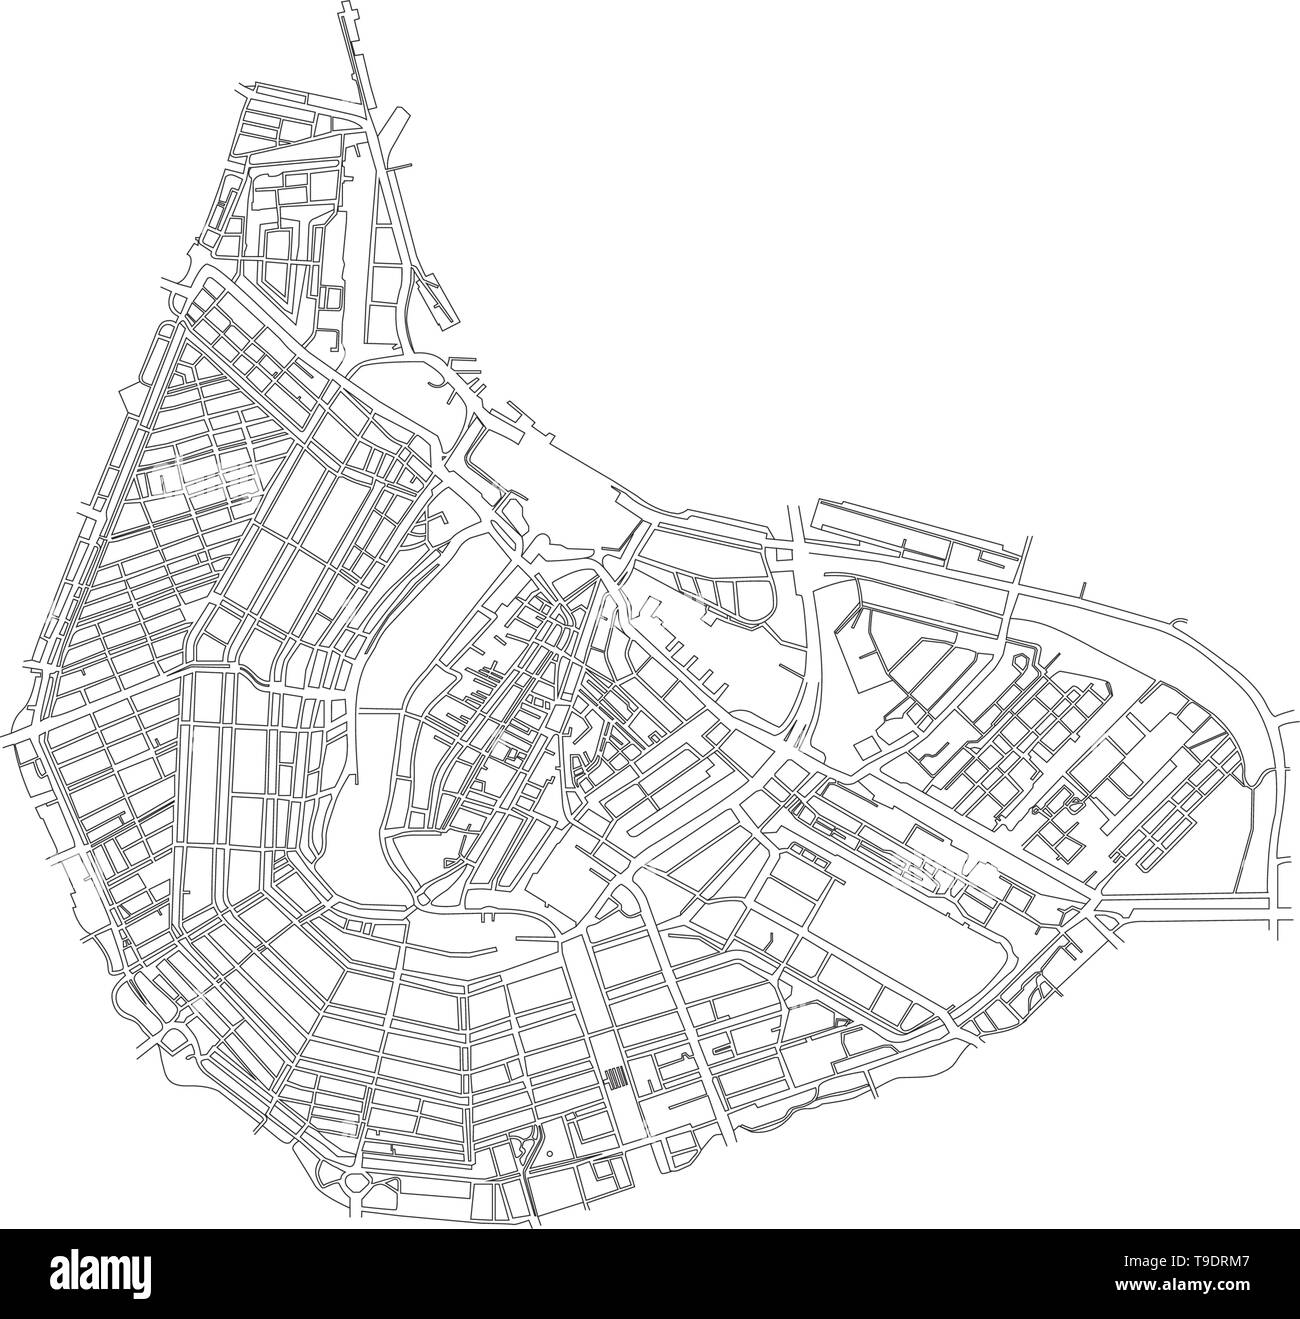 Amsterdam City center map vector isolated on white background - Stock Vector